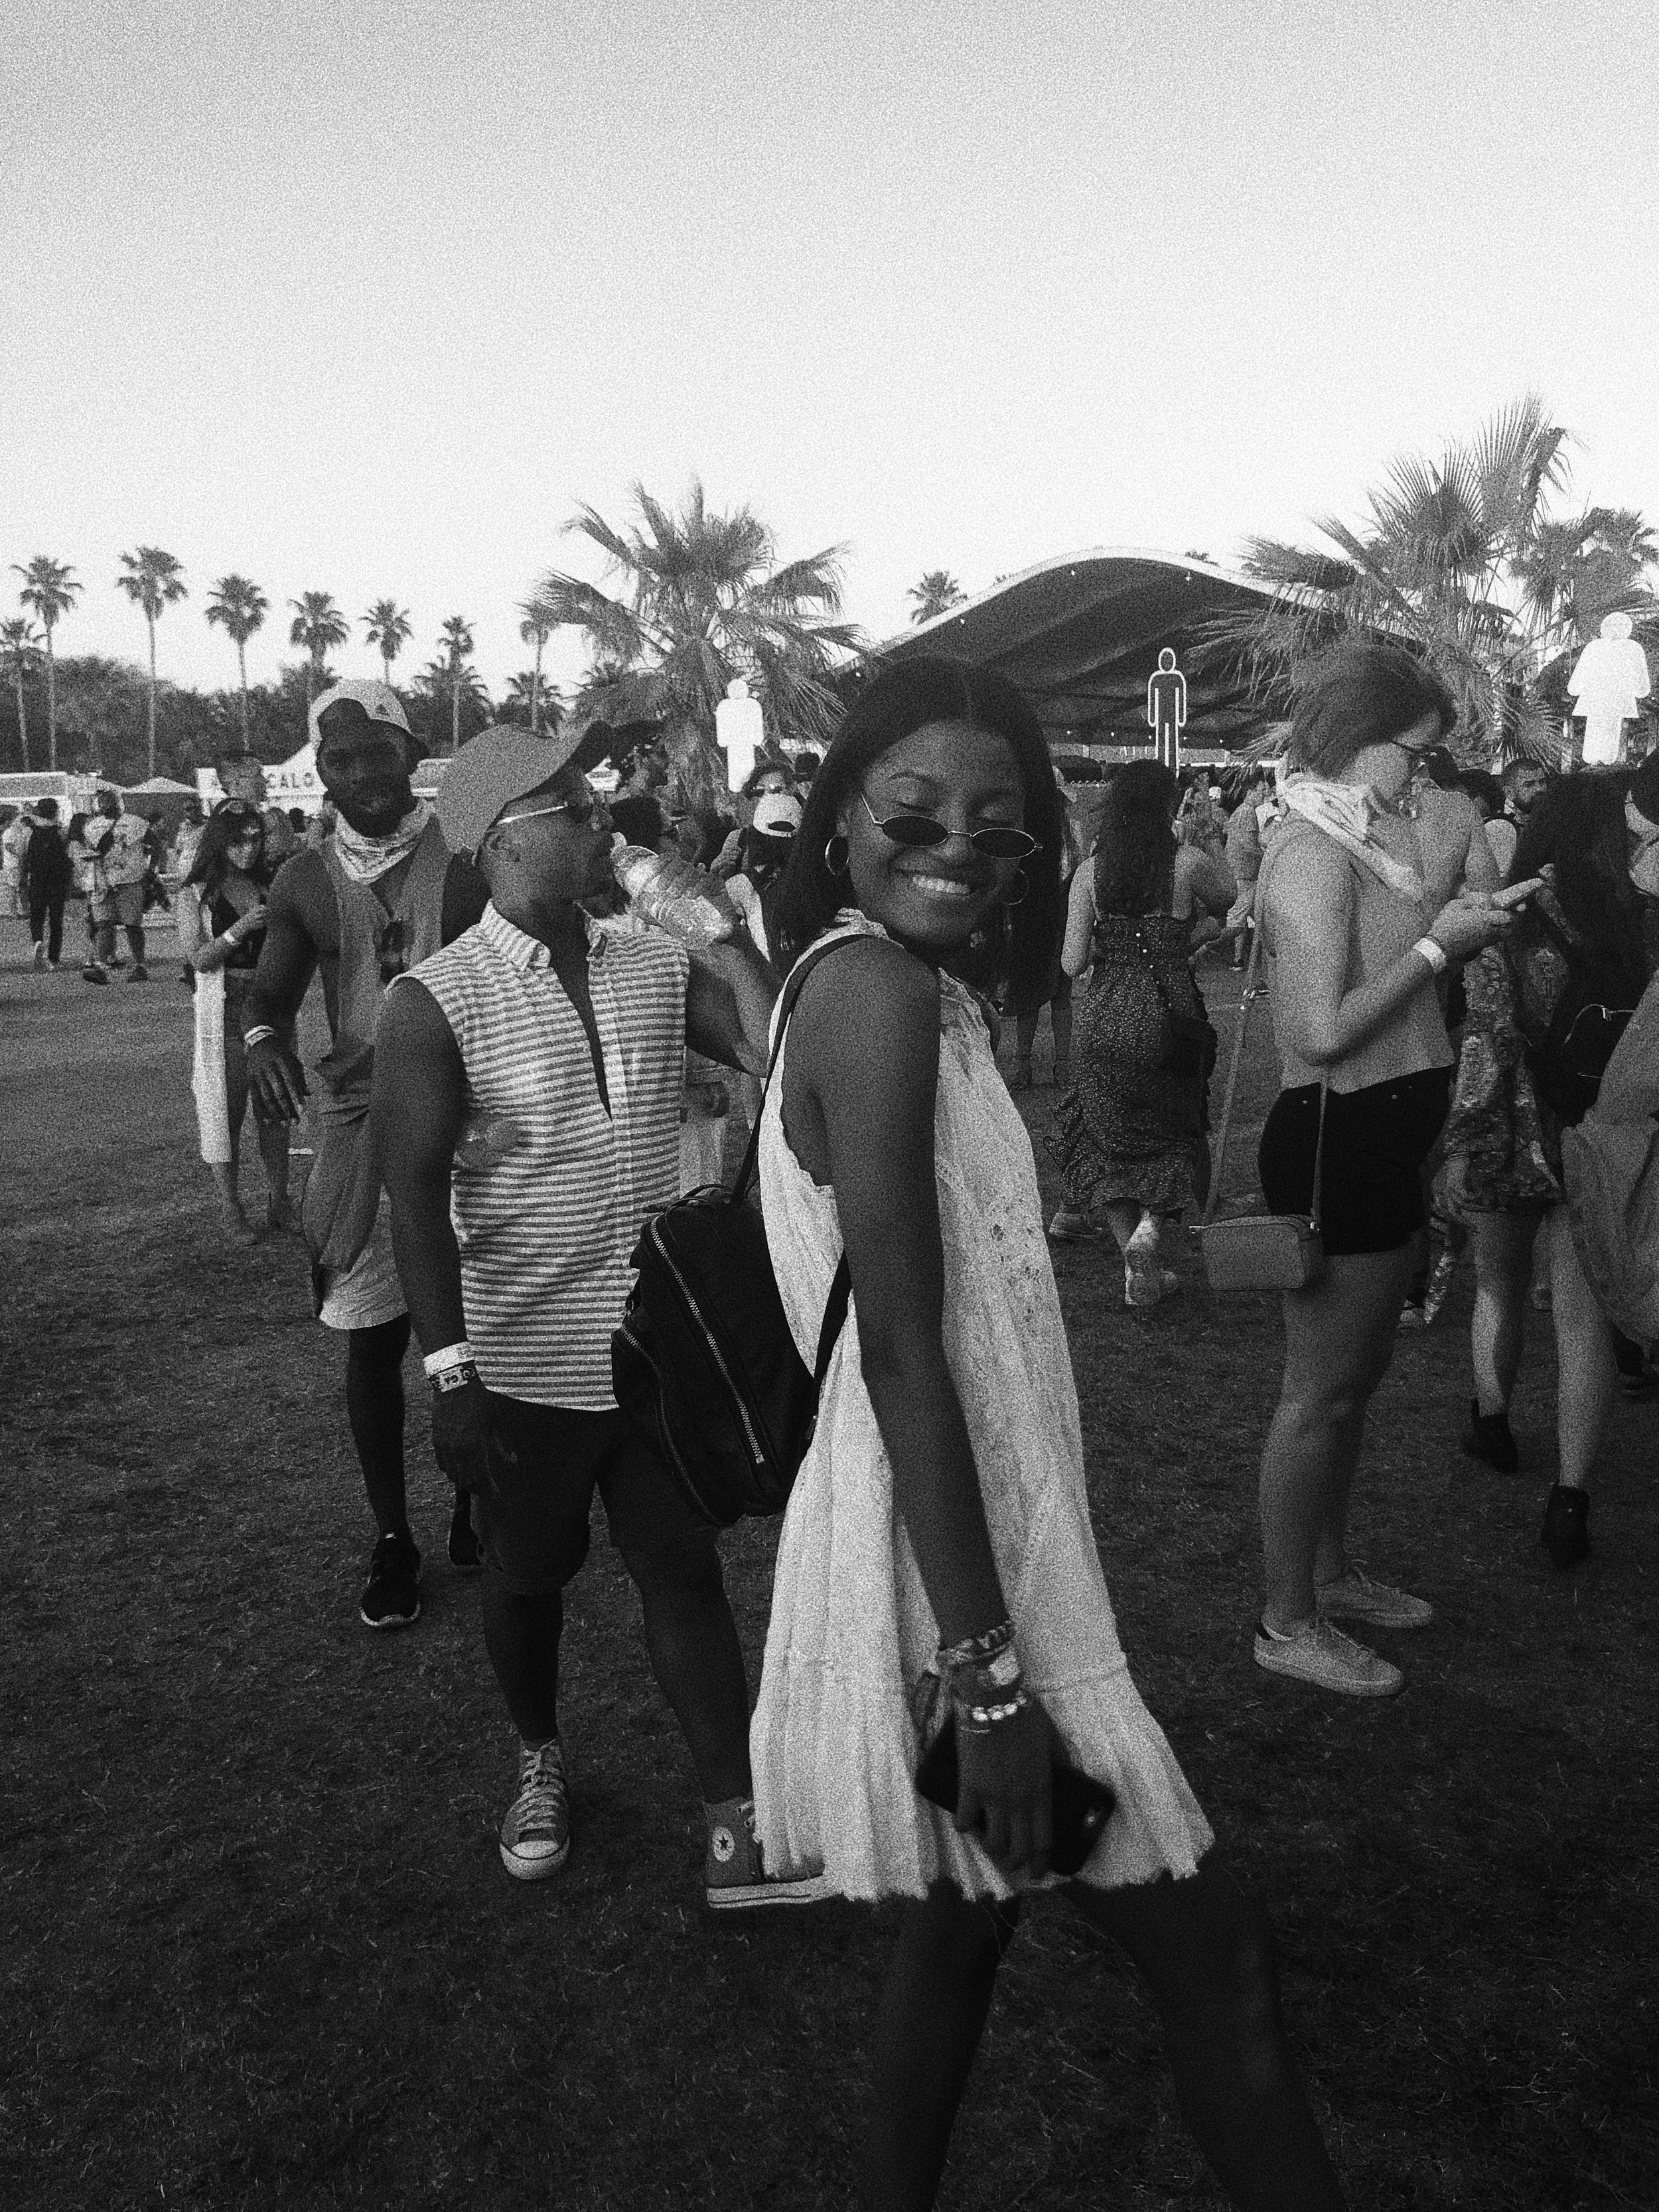 I am probably one of the goofiest girls you will ever meet but I'm happy . Thank you Coachella for another good year! See you soon! 🦋